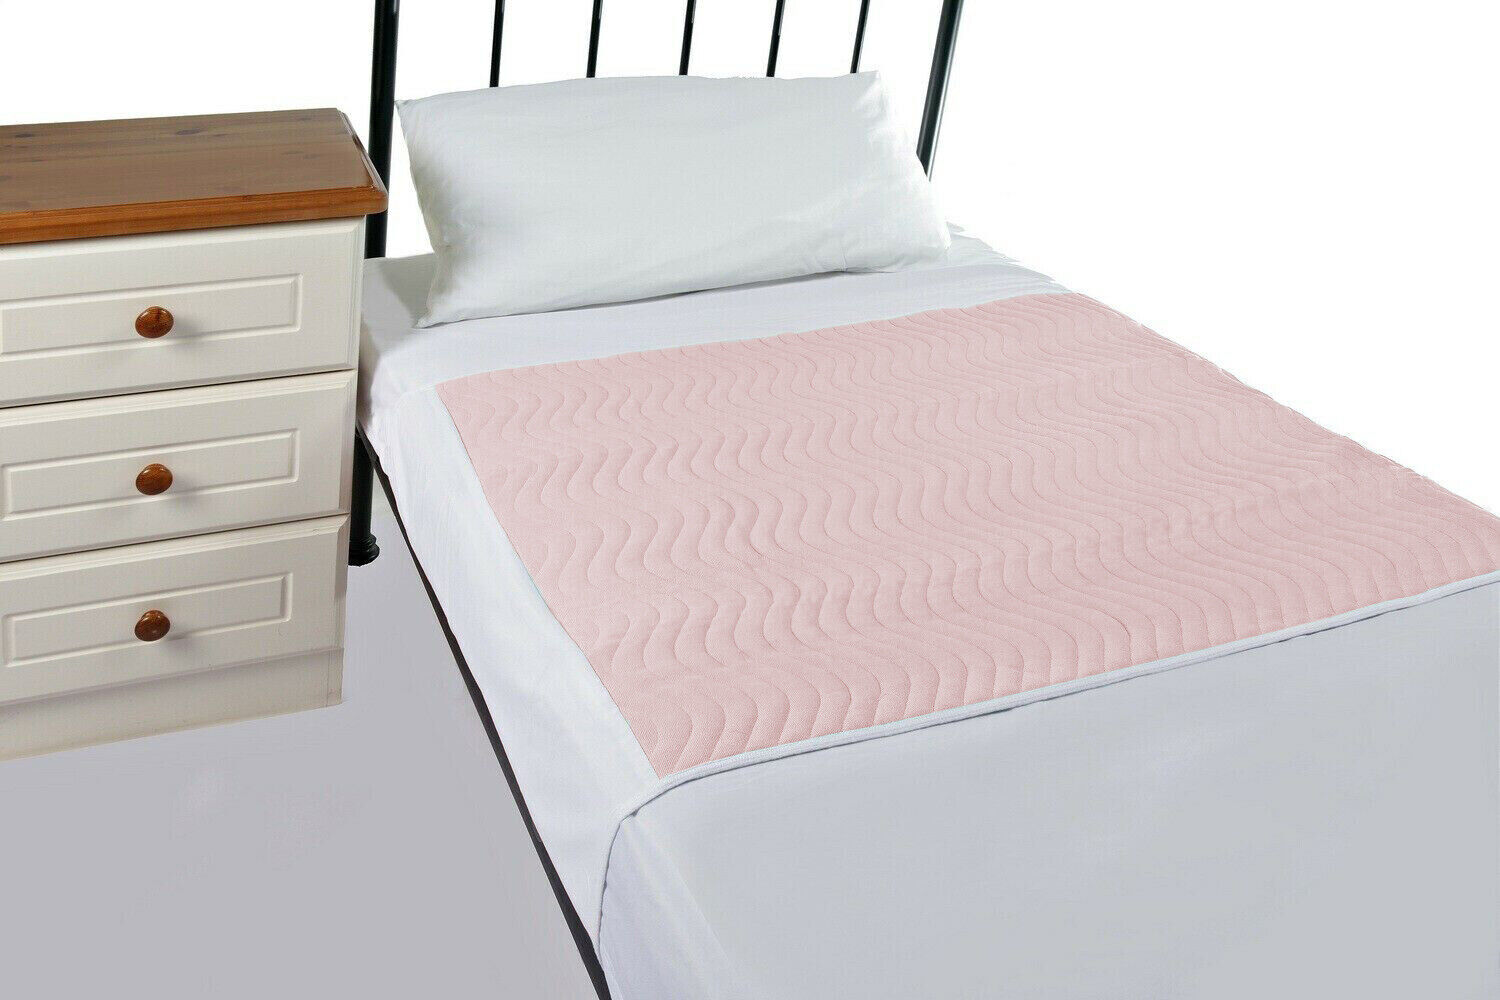 Washable Incontinence Set 2 X Pink Bed Pads With Tucks 1 X Mattress Protector Ebay